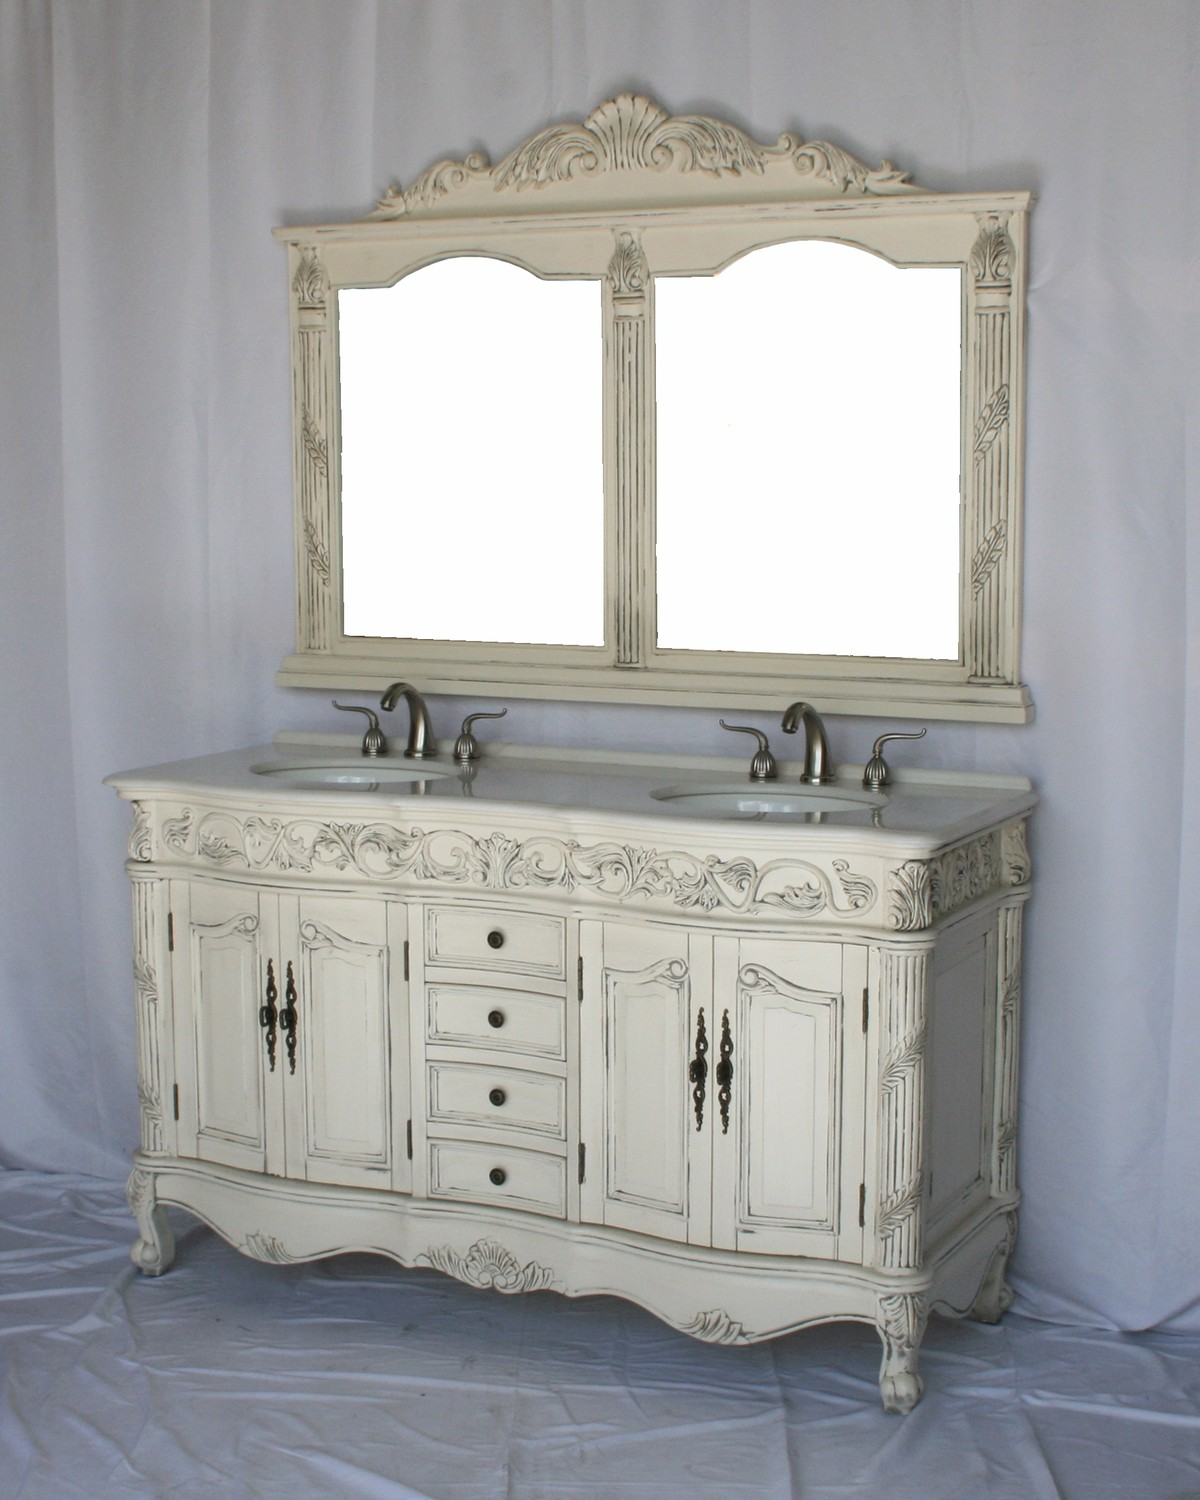 """60"""" Adelina Antique Style Double Sink Bathroom Vanity in Antique White Finish with Imperial White Stone Countertop and Mirror Option"""